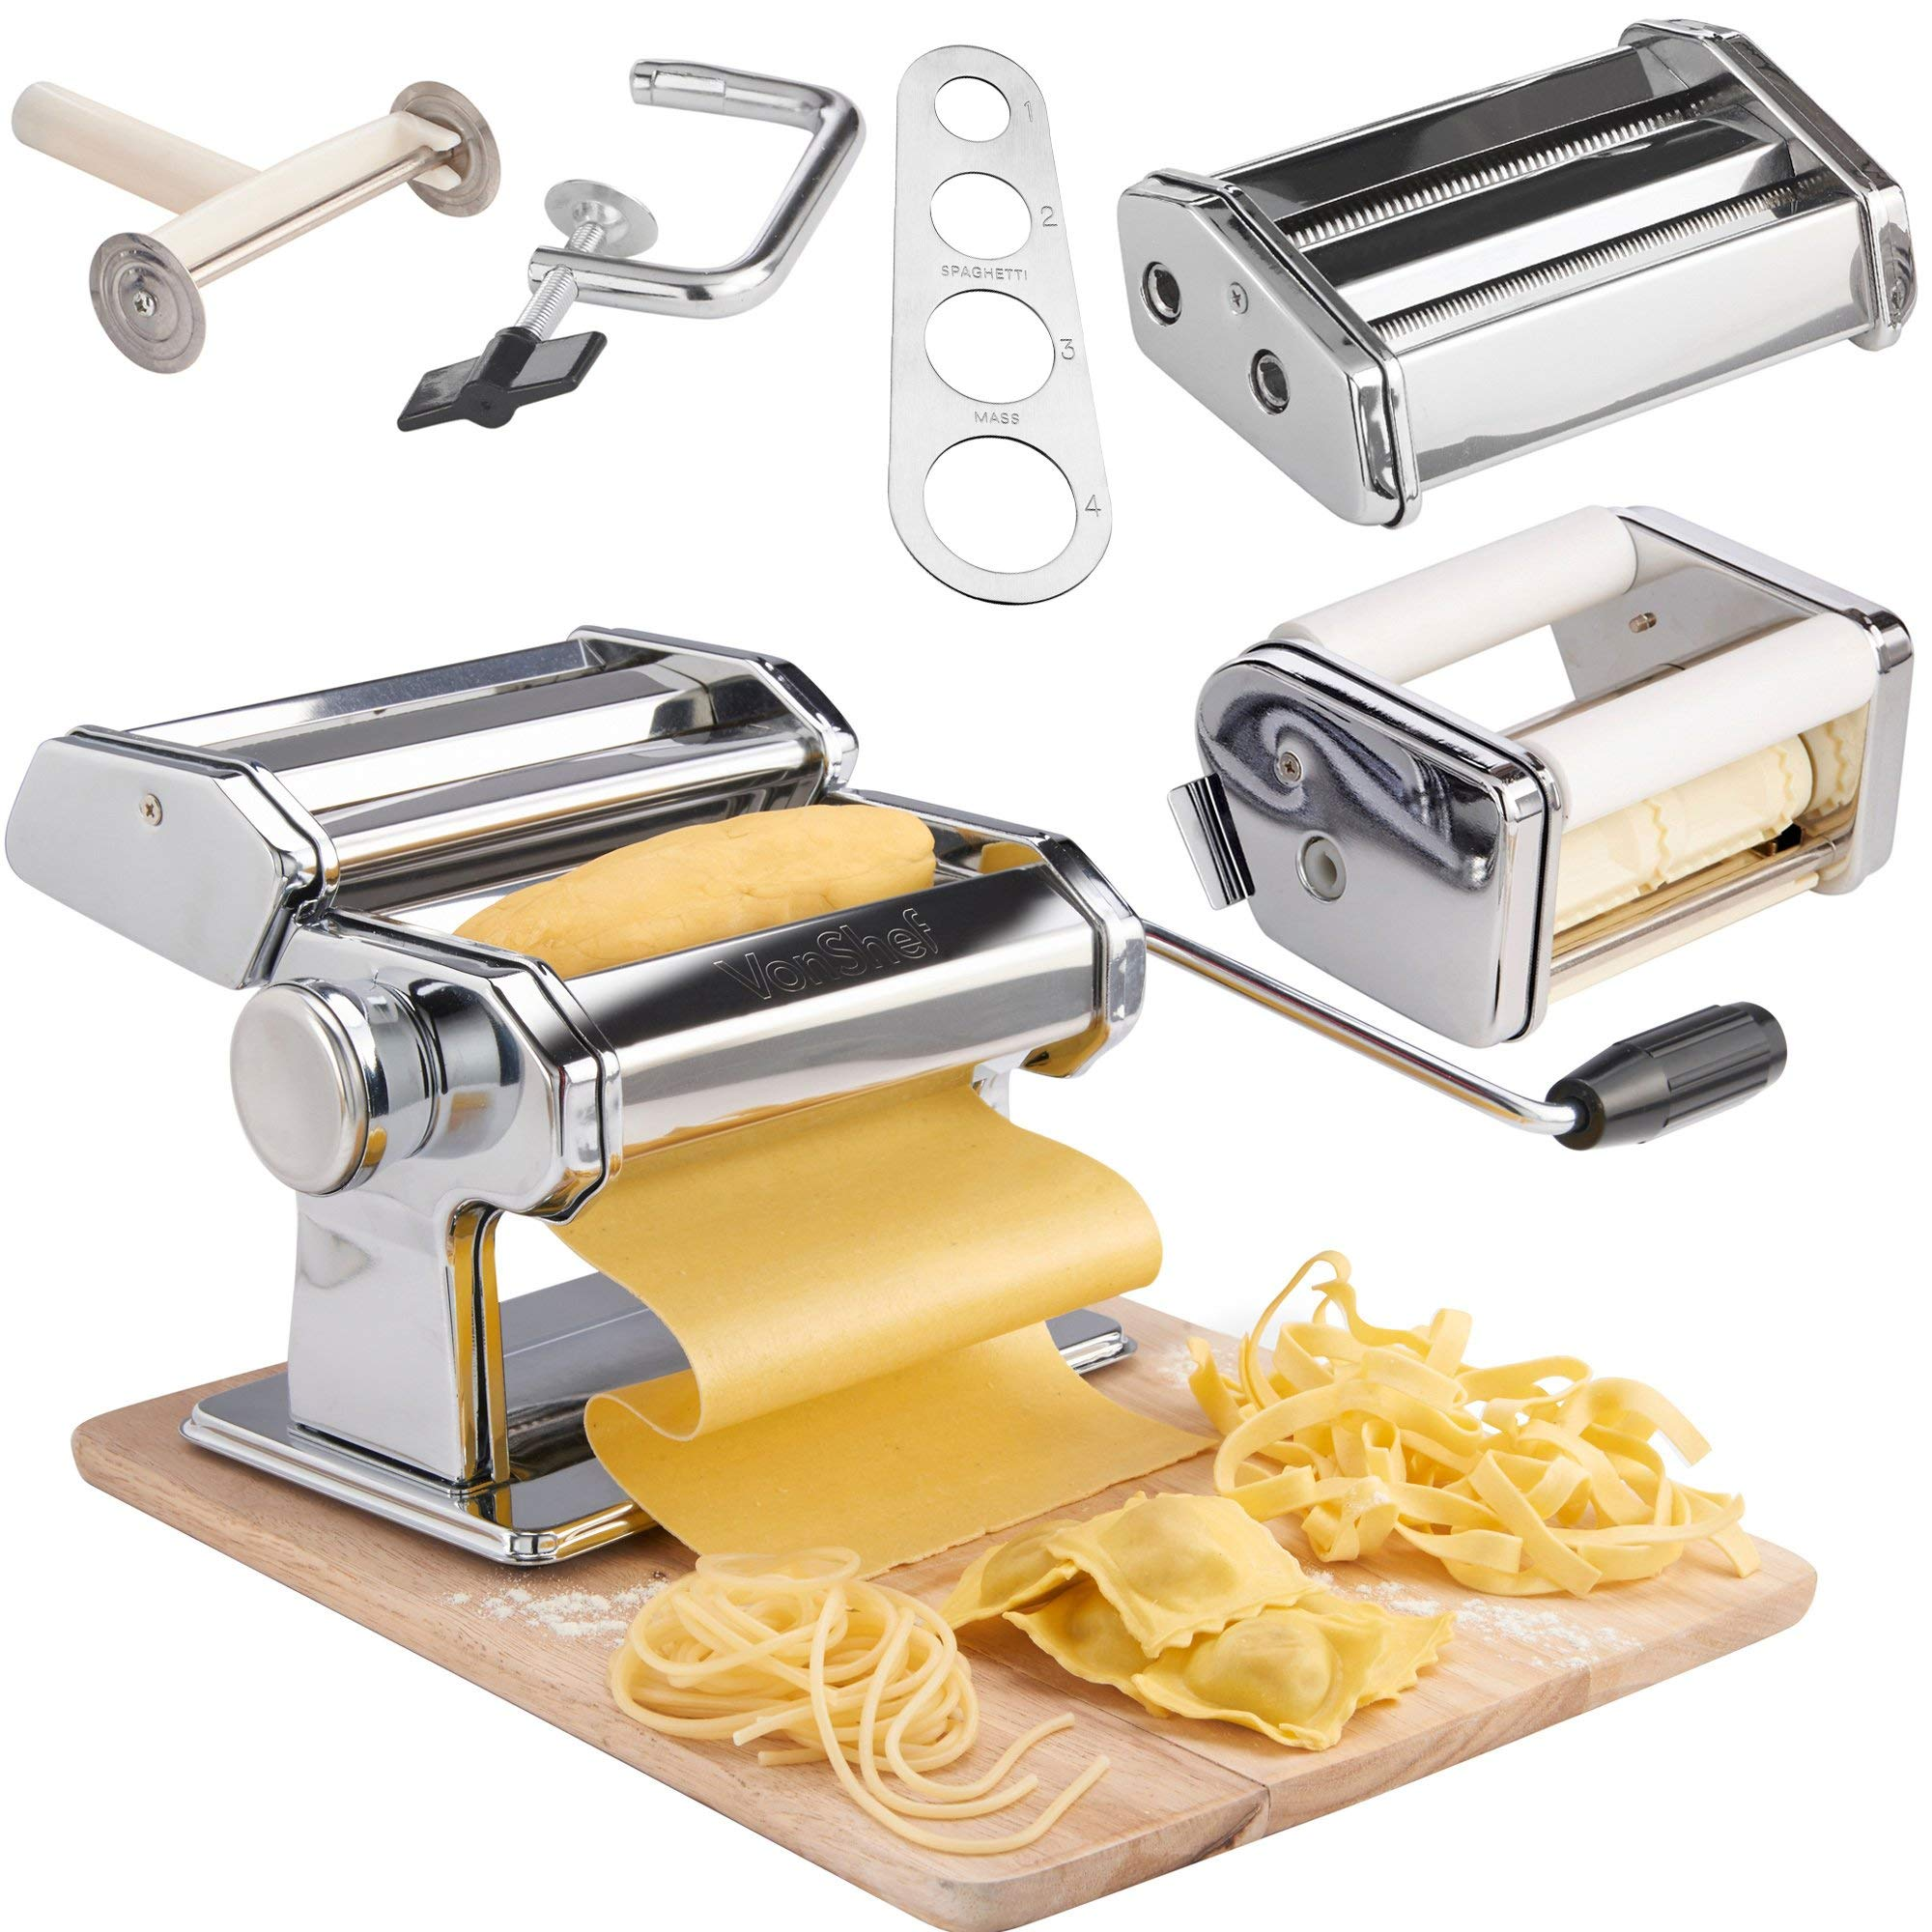 VonShef Pasta Maker, 3 in 1 Pasta Machine Stainless Steel, Pasta Roller with 3 Cut Press Blade Settings, Table Top Clamp and Pasta Measuring Tool for Homemade Spaghetti, Fettuccini (Renewed) by VonShef